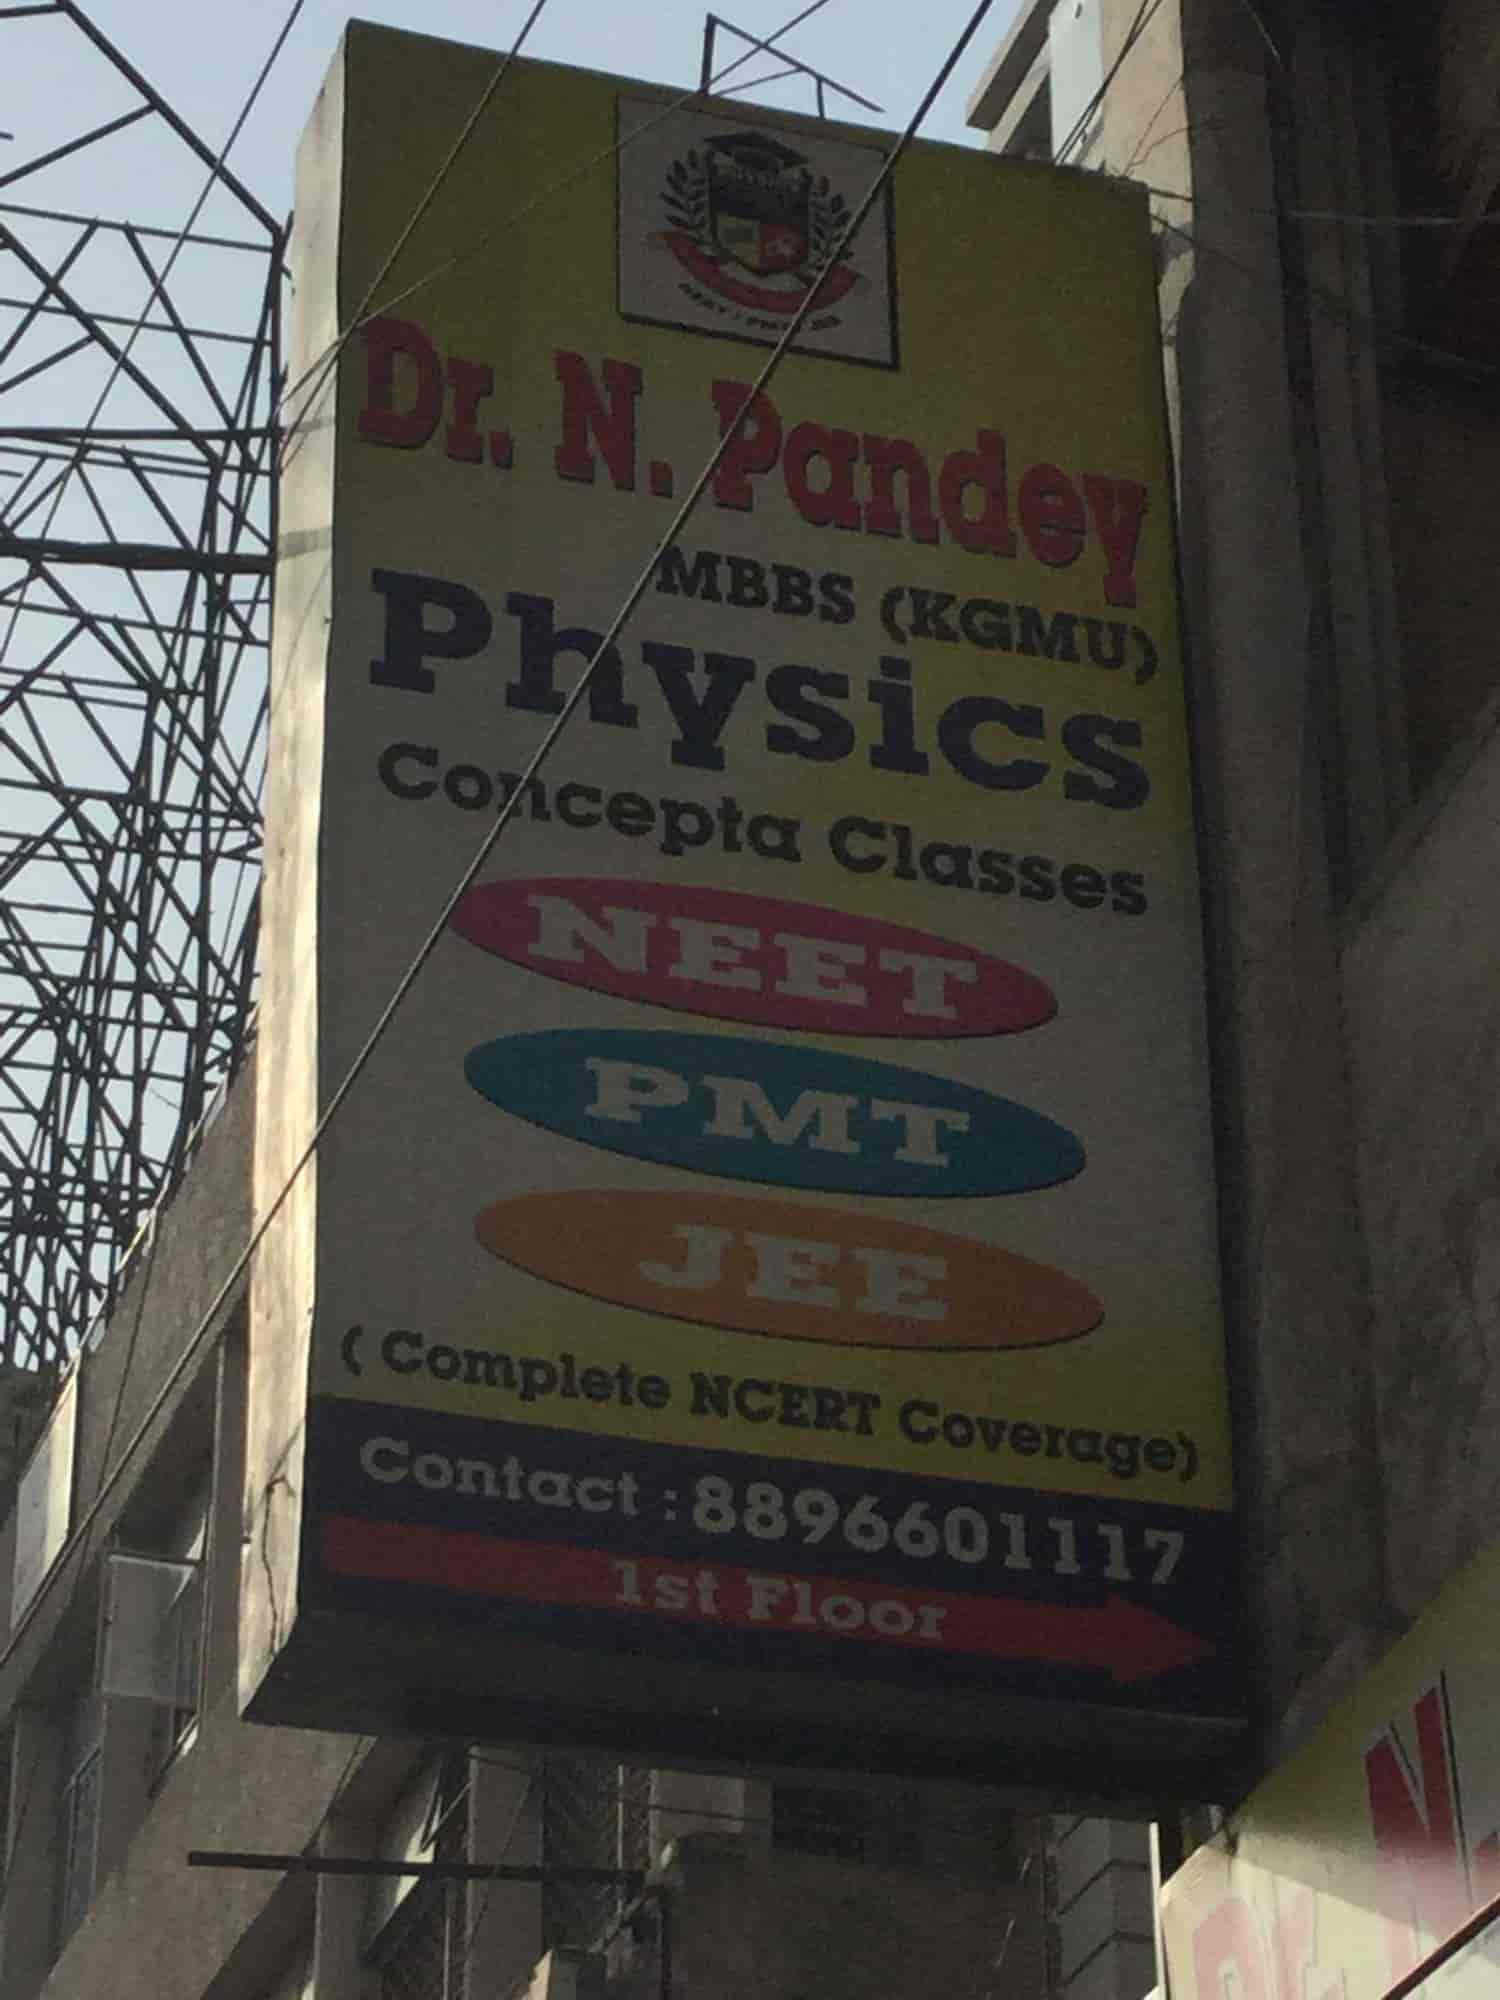 Dr  N  Pandey physics Concepta Classes, Lucknow - Neet